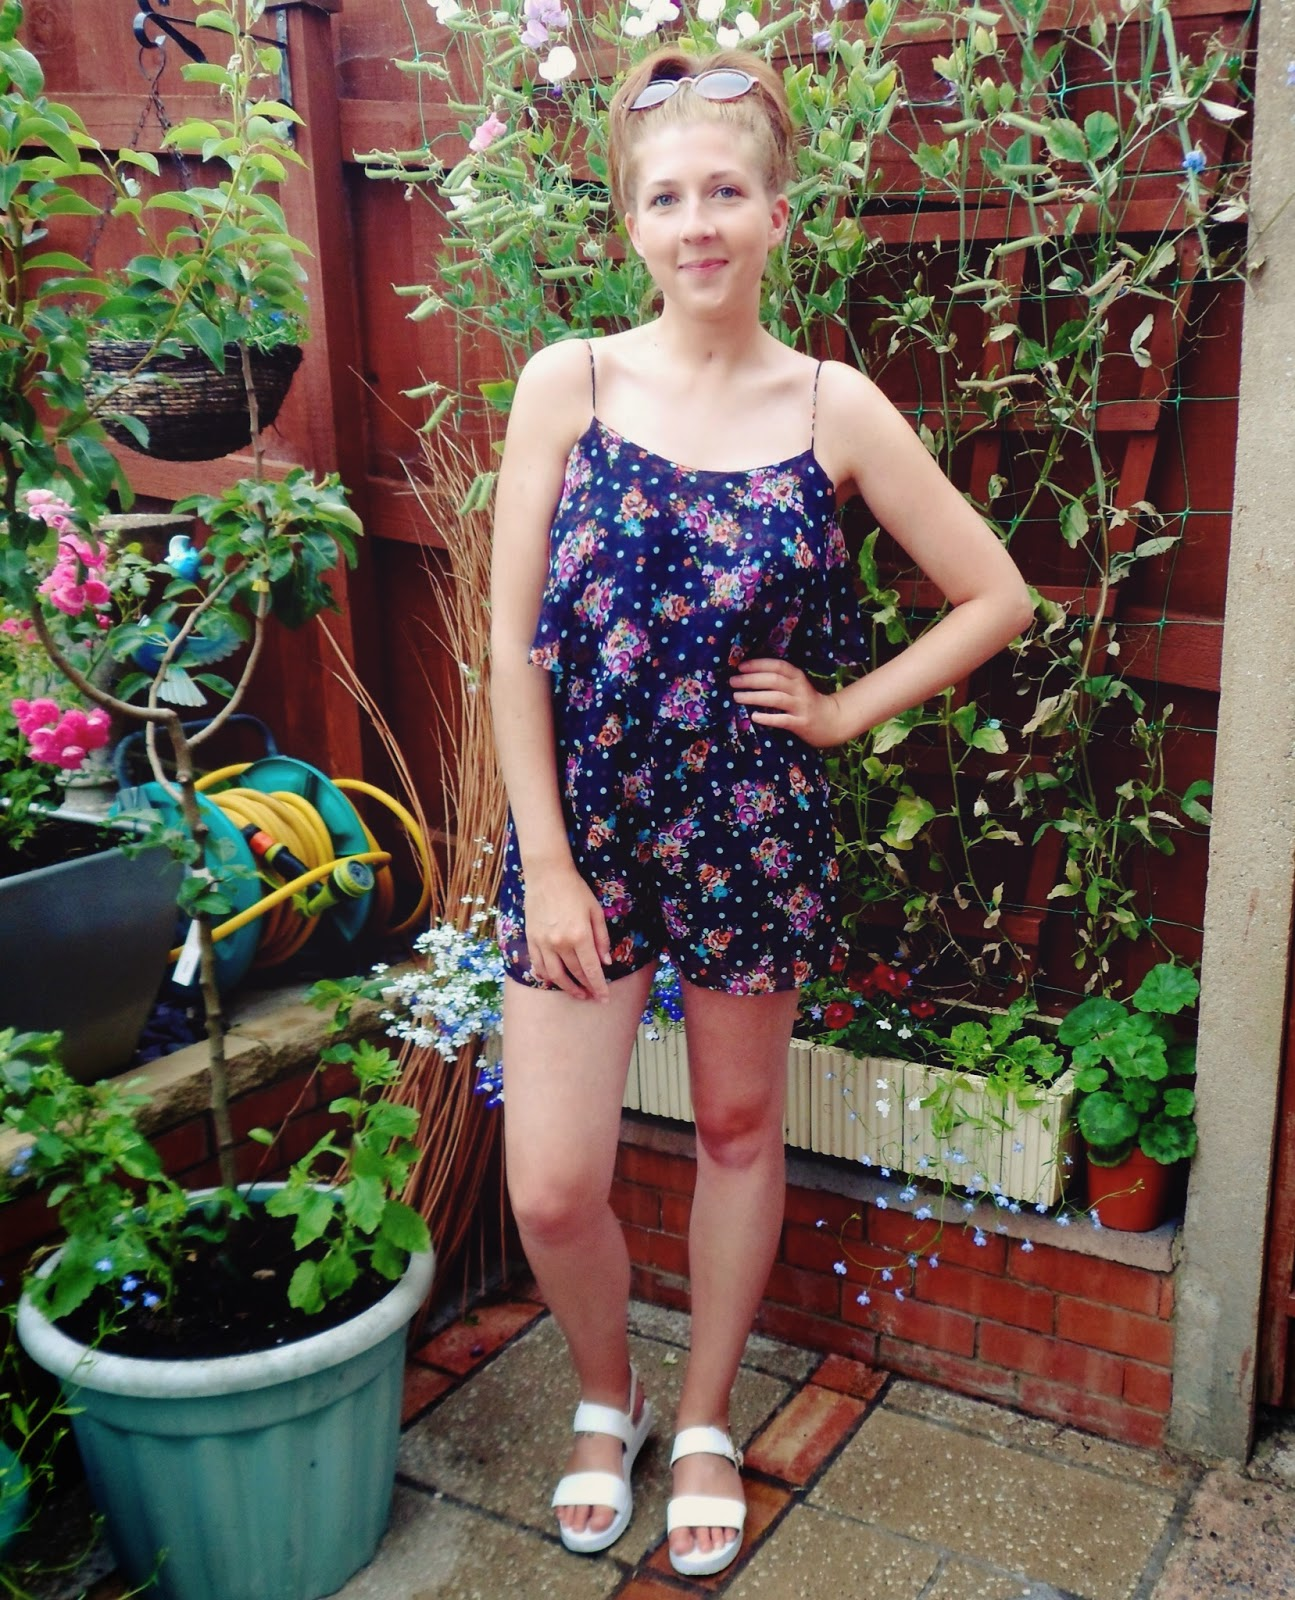 fashion, fashionbloggers, fbloggers, floral, ootd, outfitoftheday, playsuit, primark, rucksack, sunglasses, whatibought, whatimwearing, whatiwore, wiw